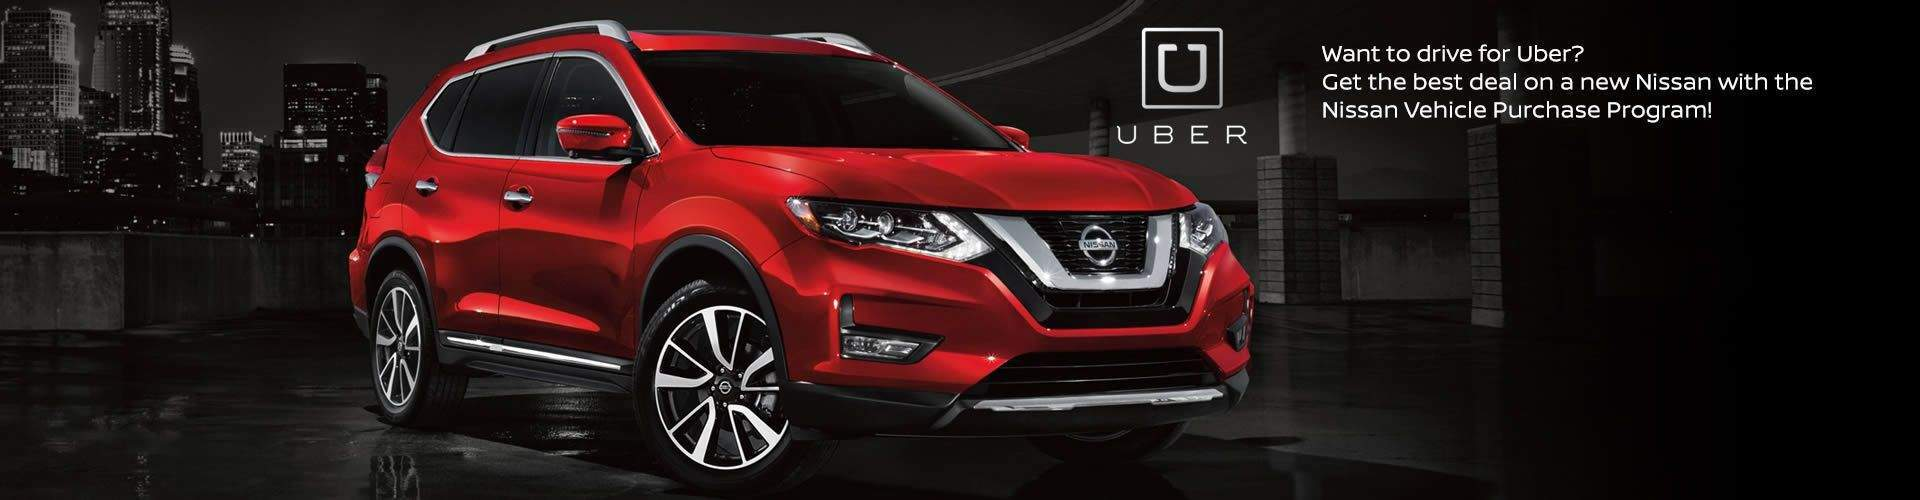 Uber Discounts at Matt Castrucci Nissan